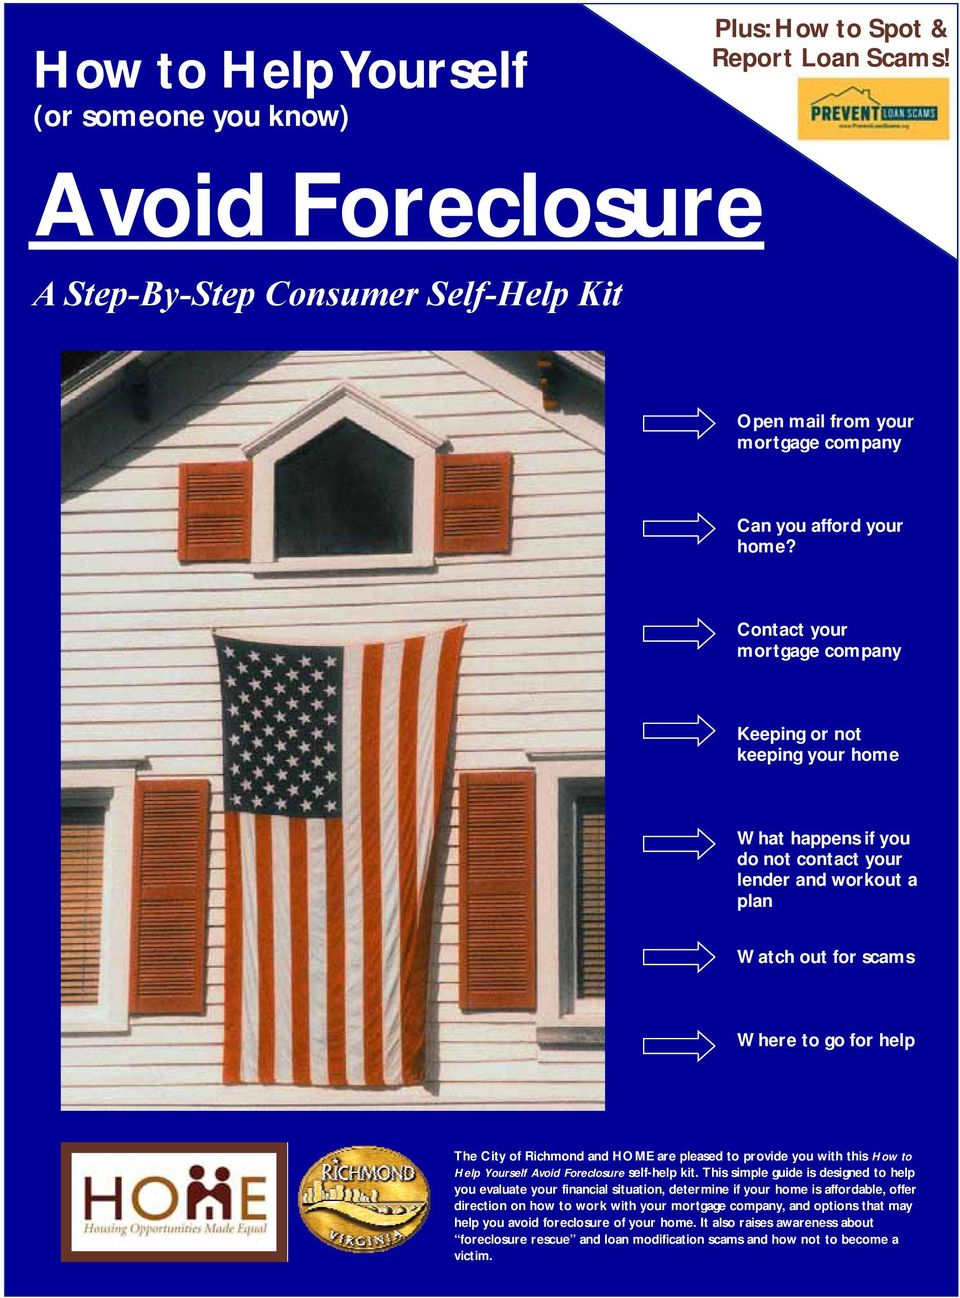 are pleased to provide you with this How to Help Yourself Avoid Foreclosure self-help kit.